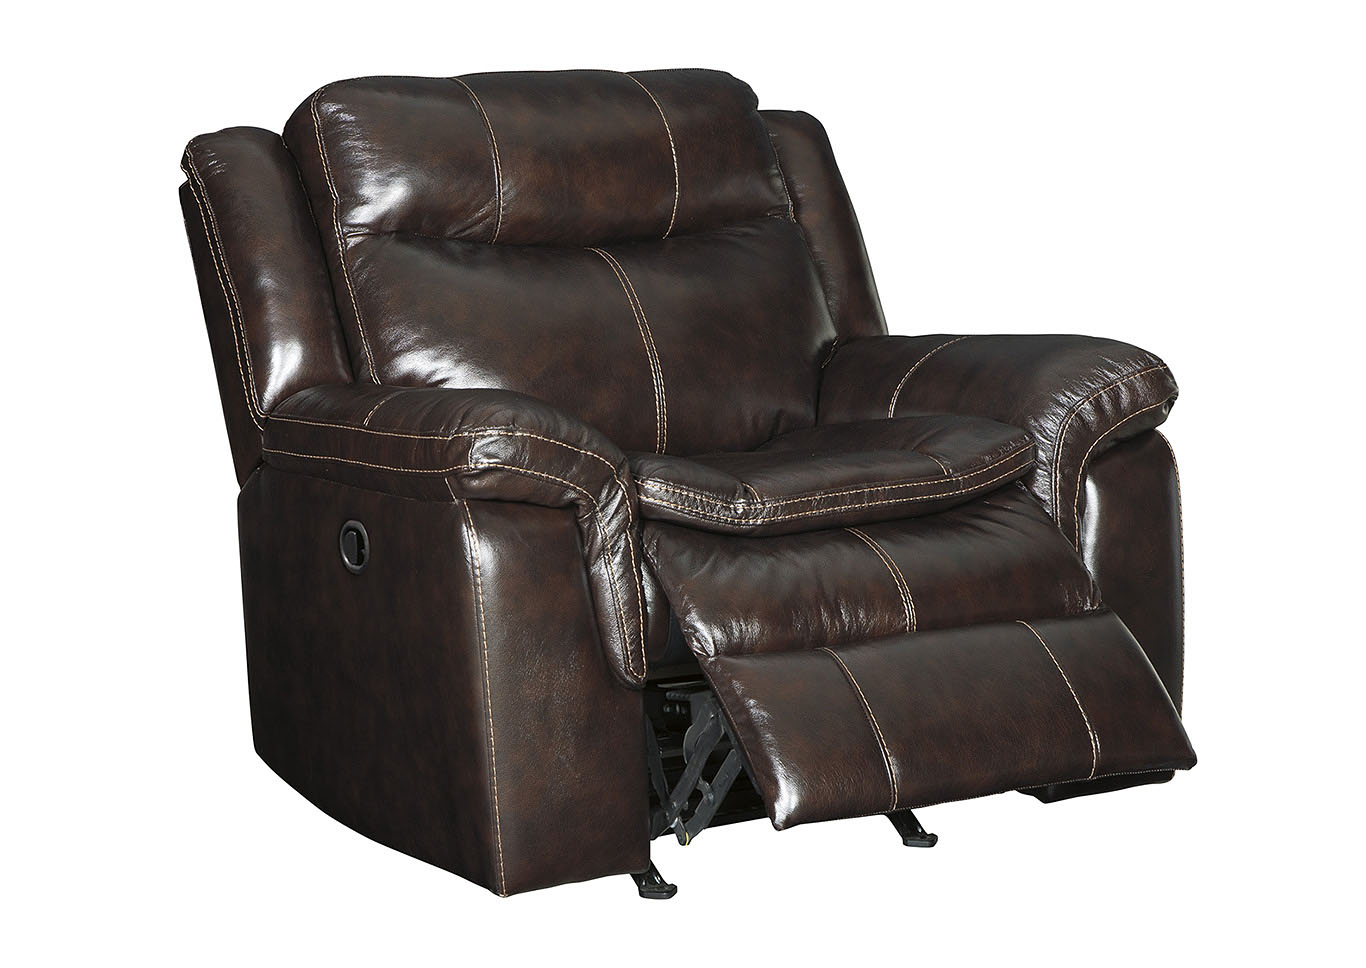 Lockesburg Canyon Rocker Recliner,Signature Design By Ashley